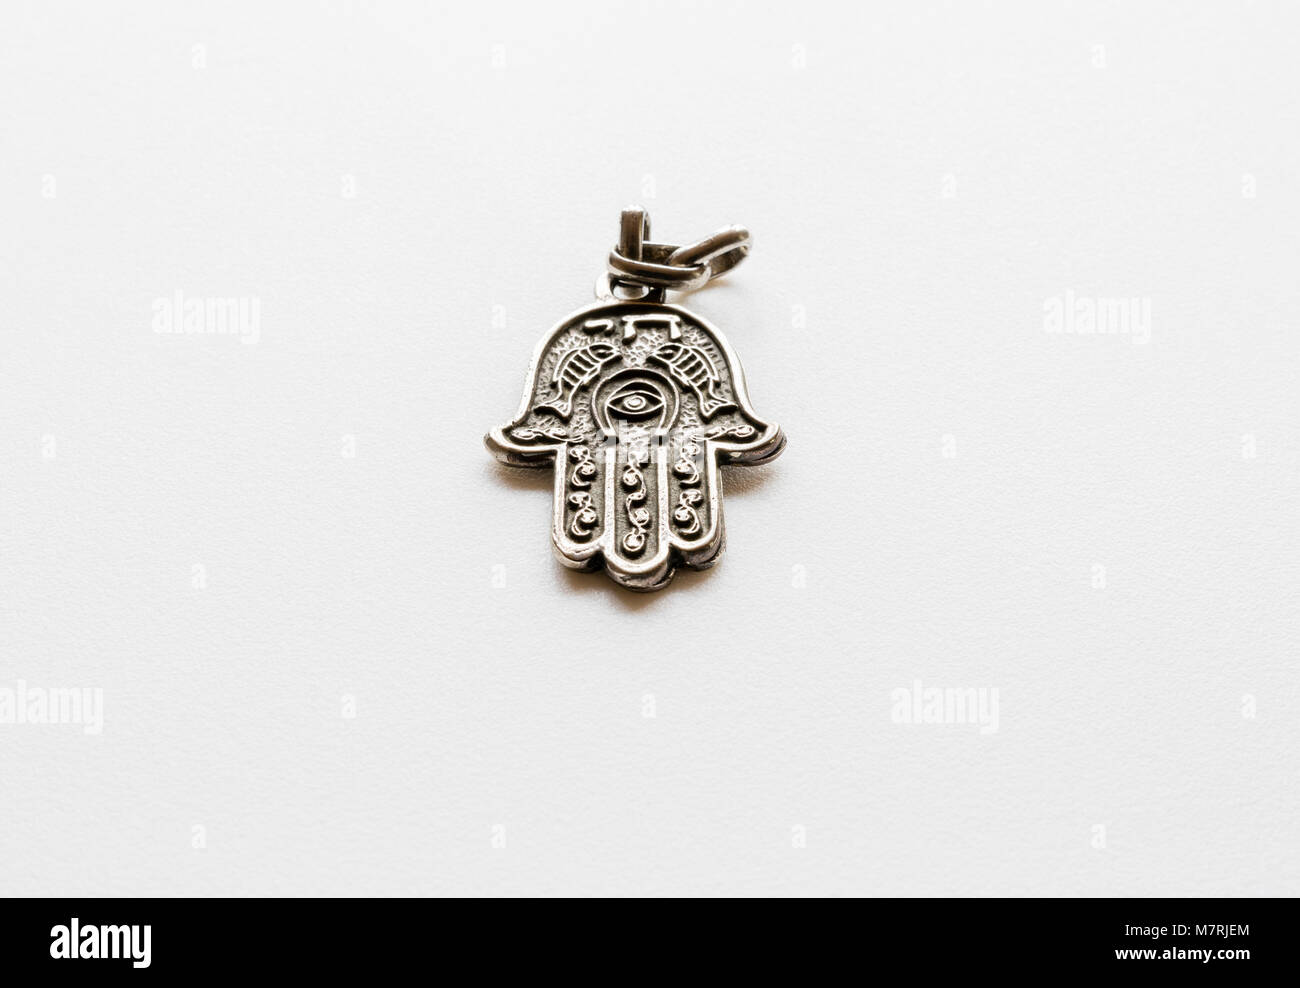 Hebrew god stock photos hebrew god stock images alamy the hamsa hand a middle eastern amulet symbolising the hand of god stock image biocorpaavc